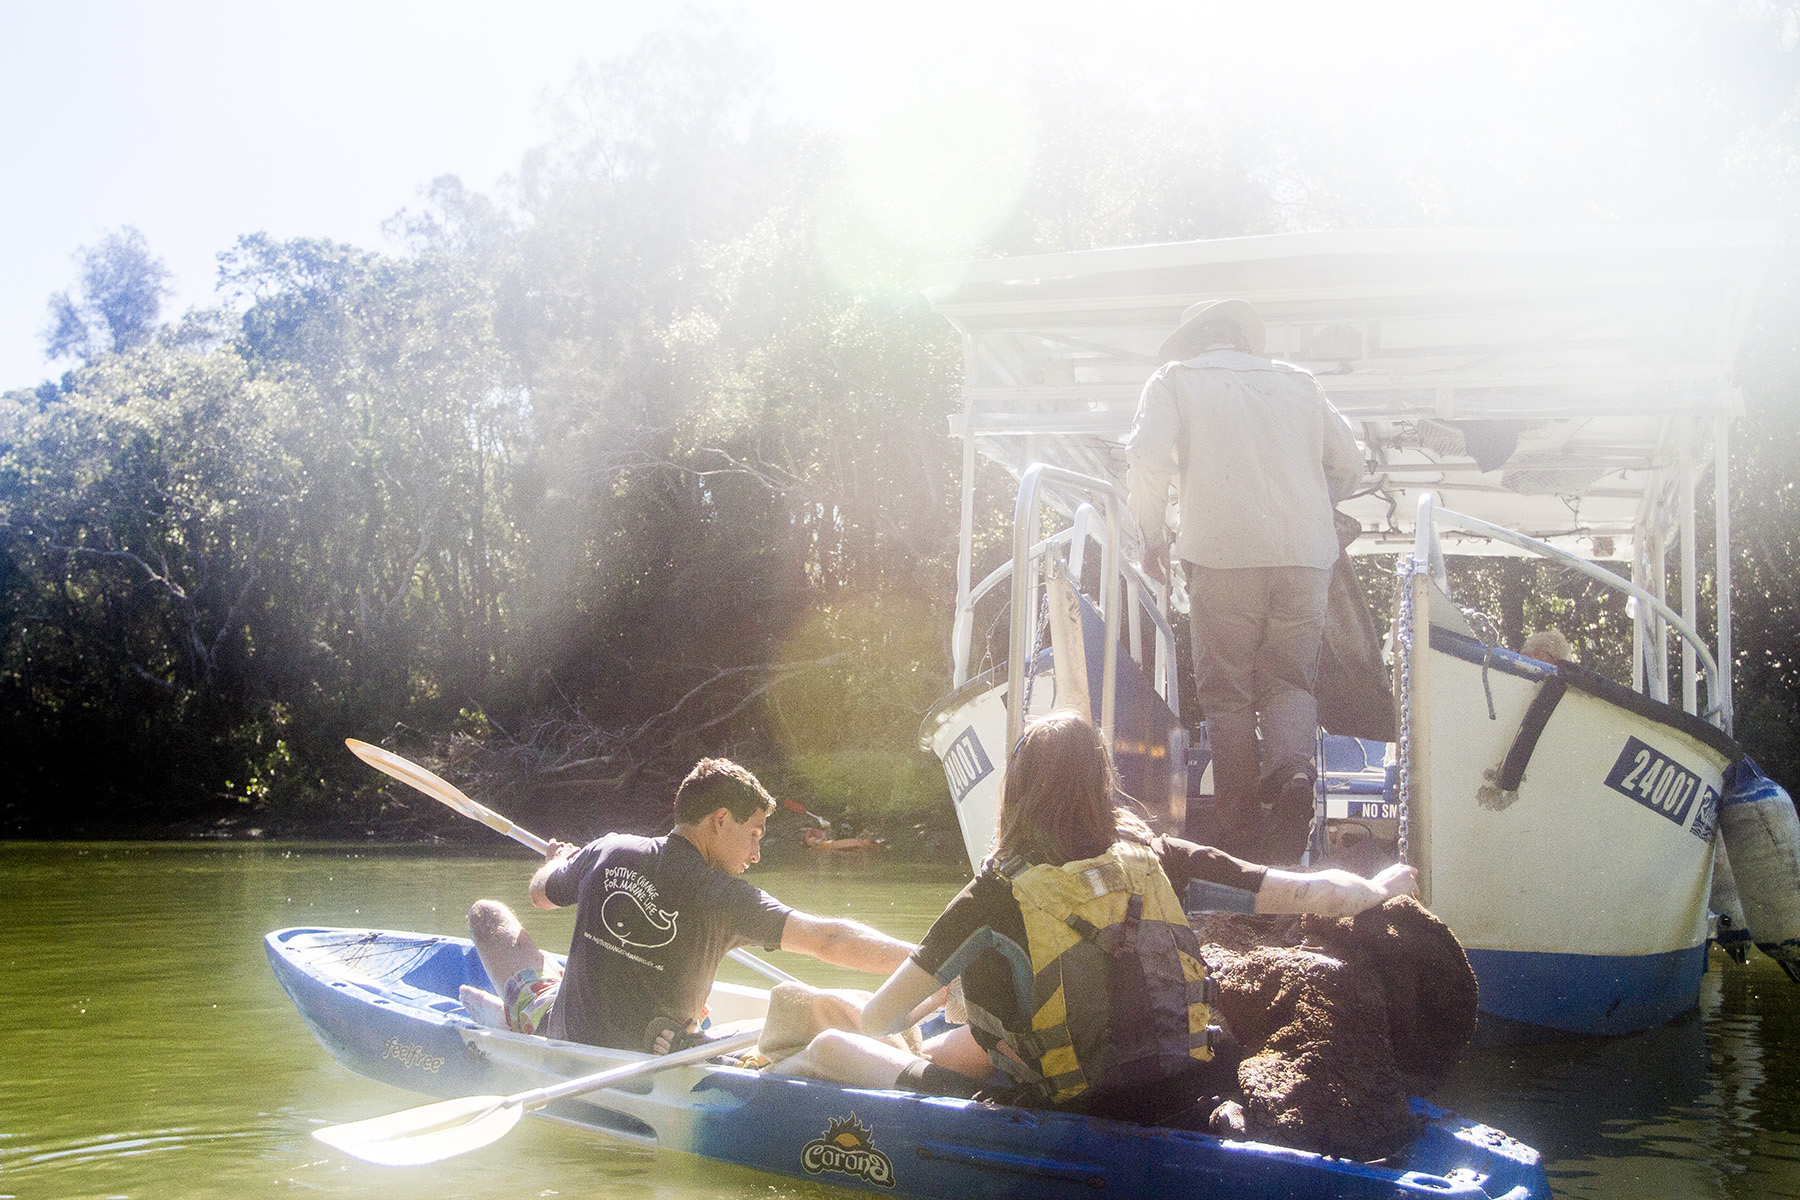 Our River Warriors on the Brunswick River collecting kayak and boat-loads of debris, alongside our local partners Go Sea Kayaks, Byron Bay Eco Kayaks and Cruises, The Byron Bay Cookie Shack and Mullum Cares.